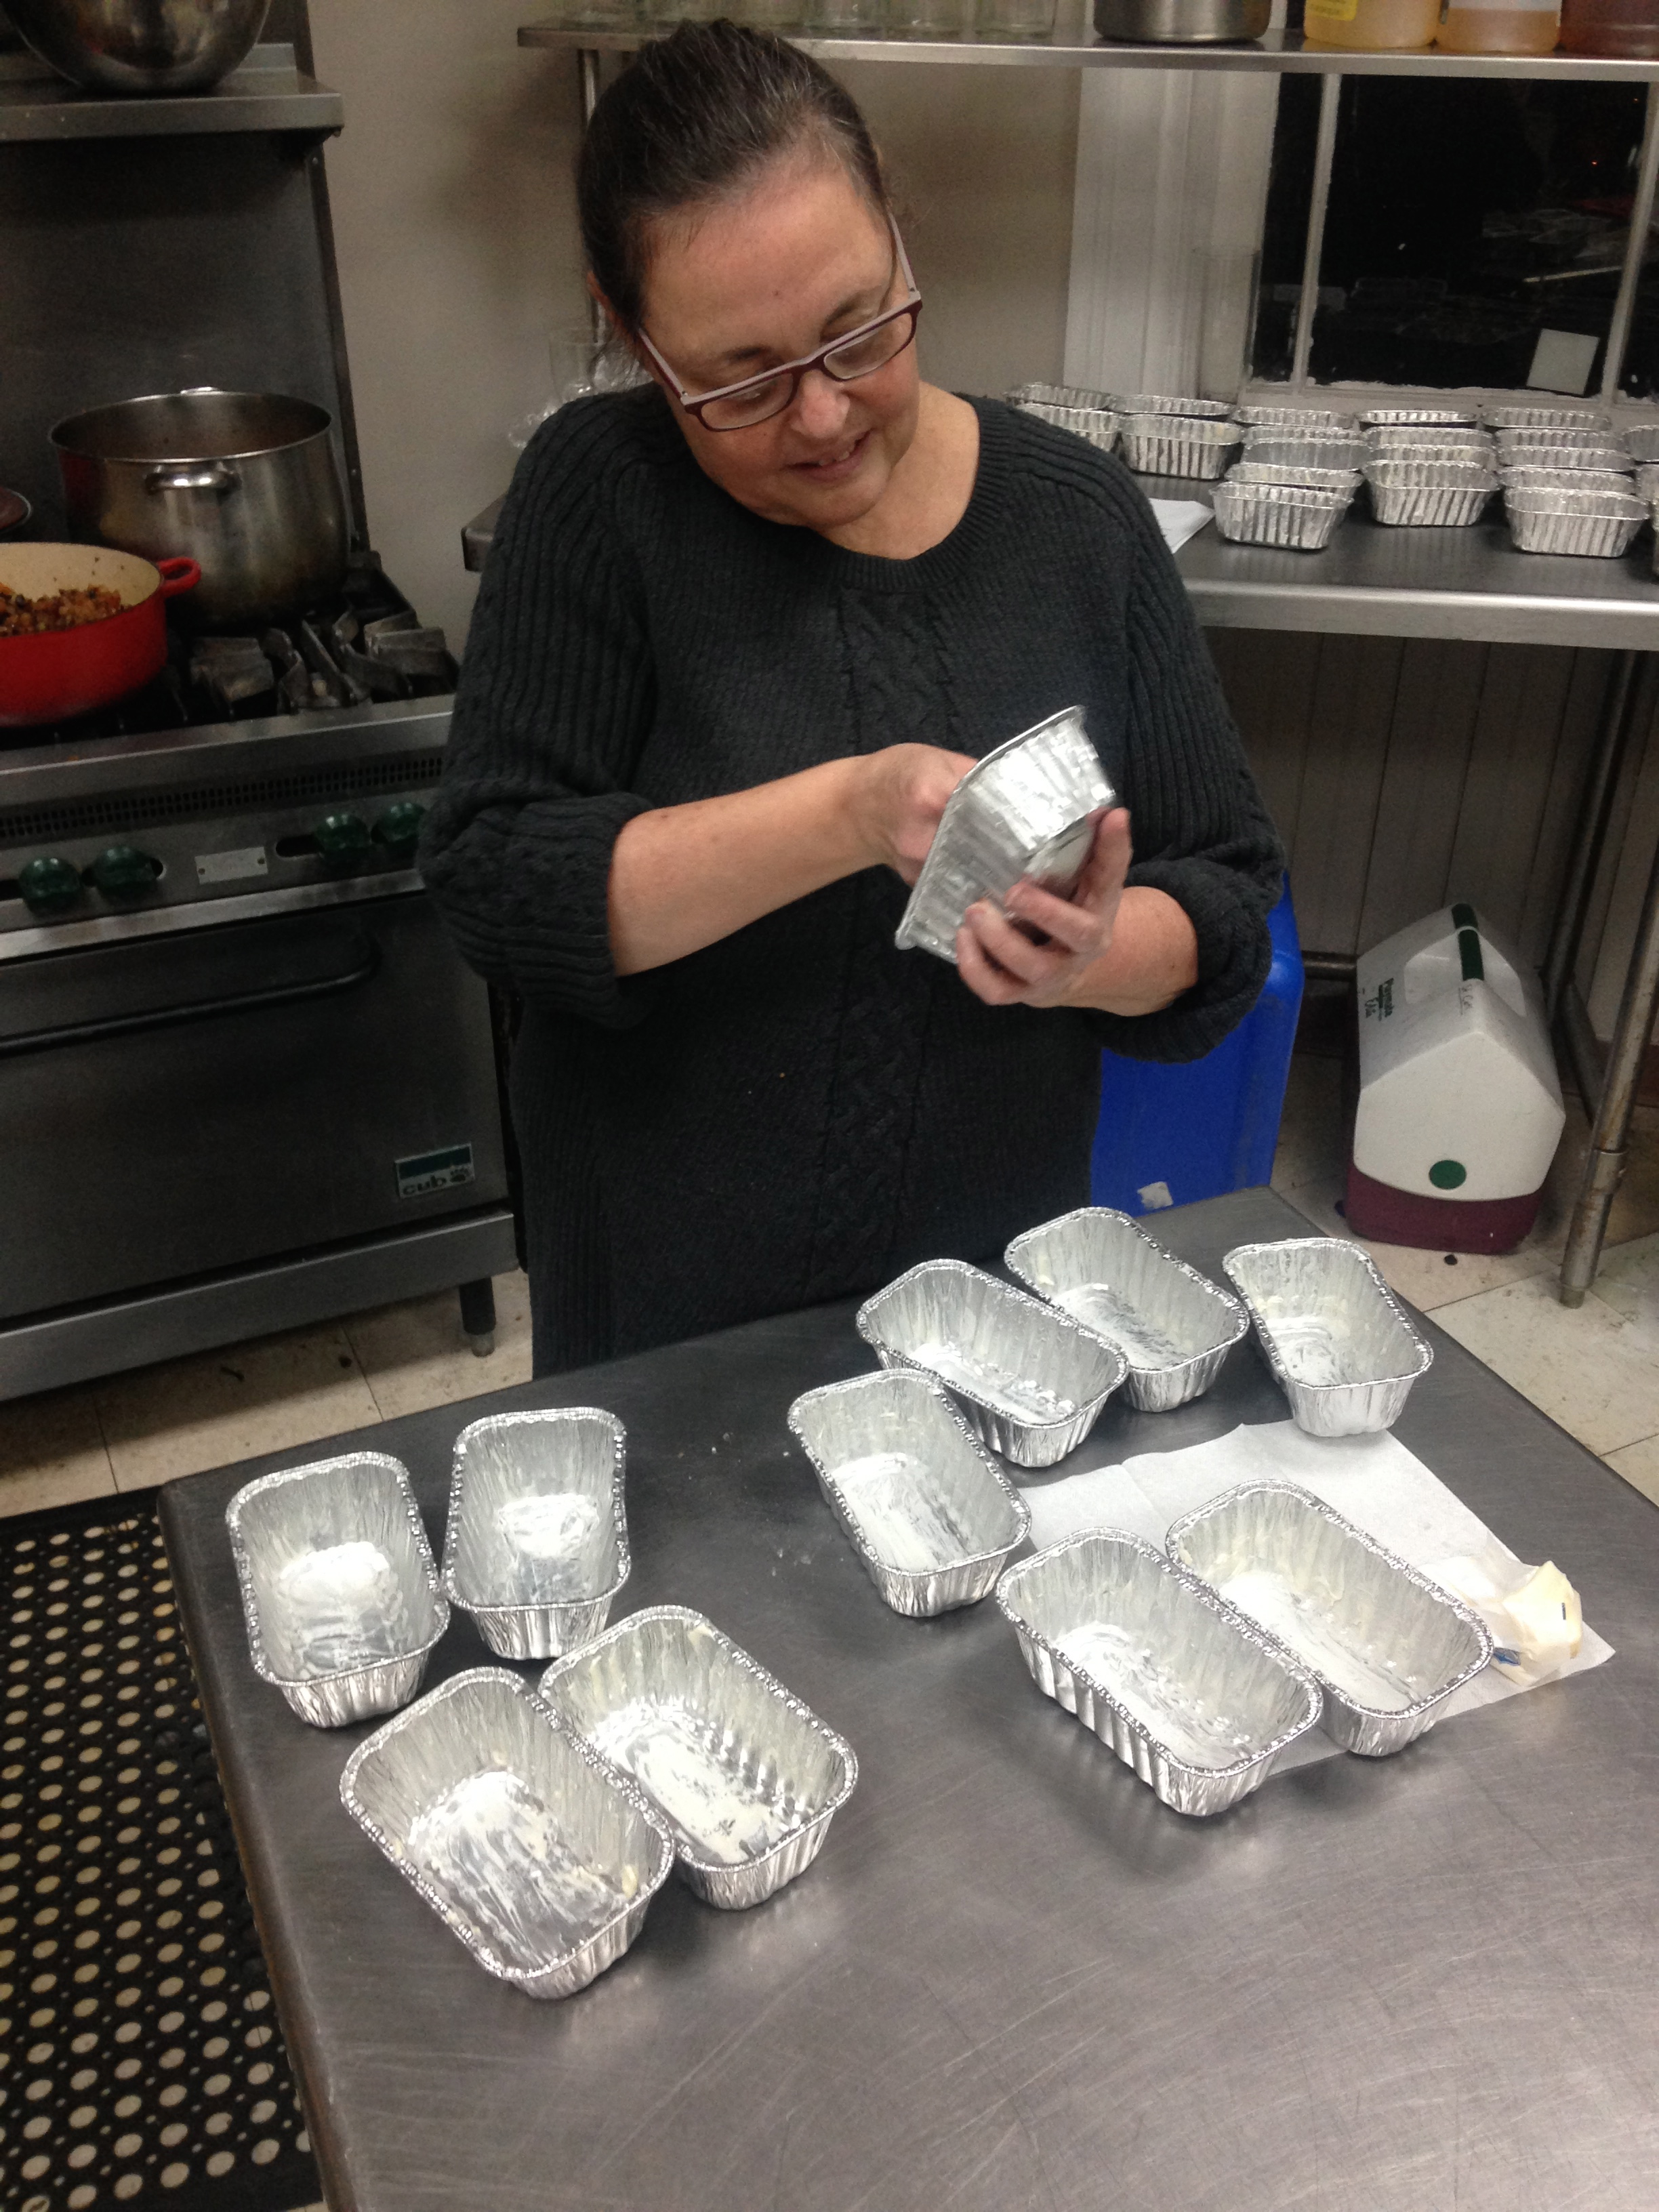 Nancy made sure the pans were plenty buttered and ready to go.